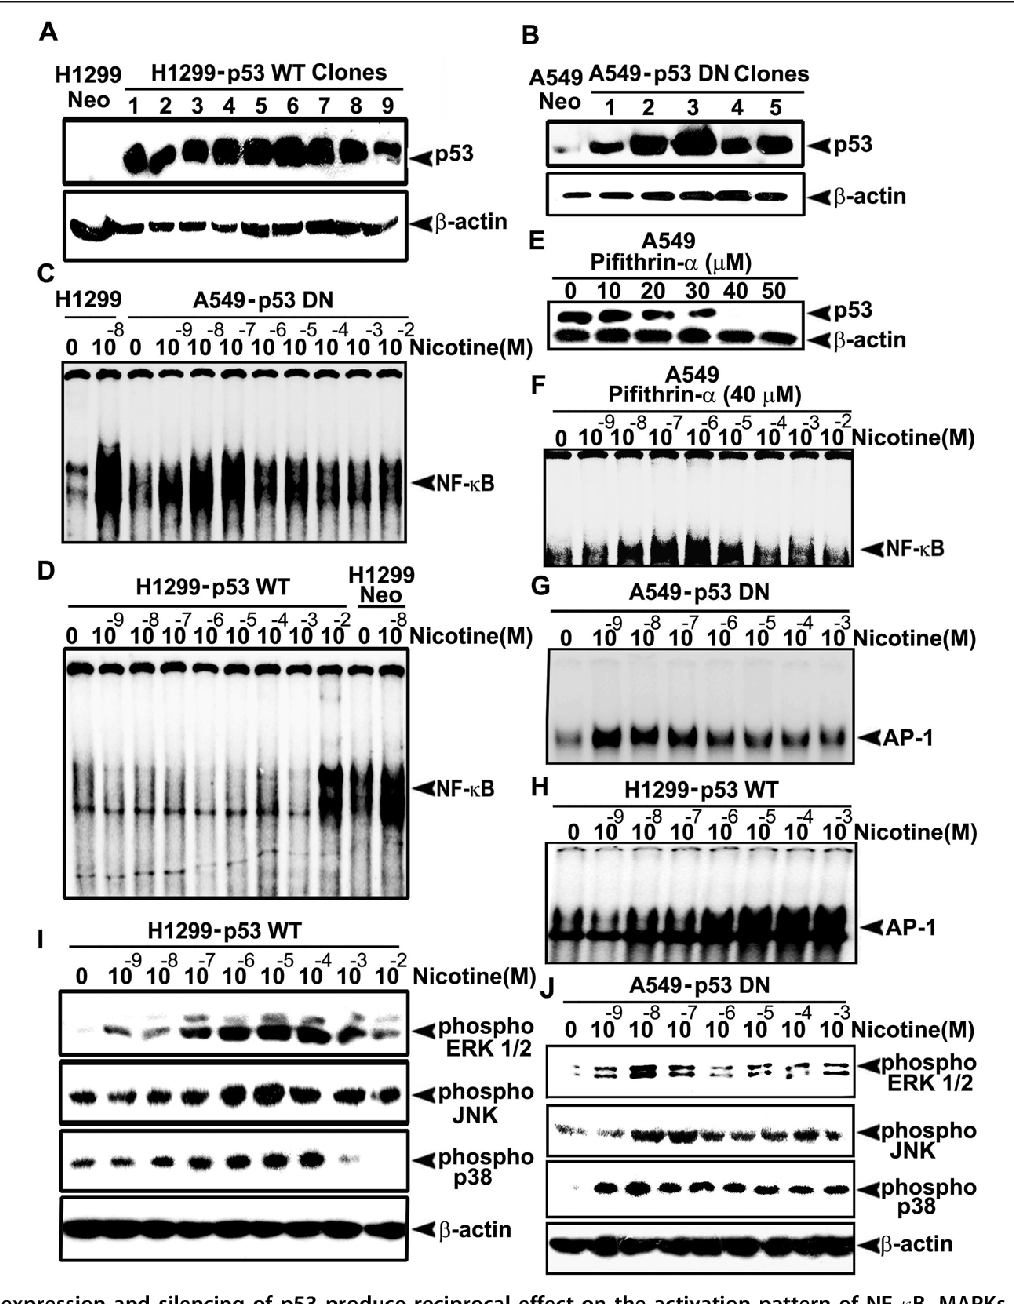 Figure 6 Over-expression and silencing of p53 produce reciprocal effect on the activation pattern of NF- B, MAPKs and AP-1. (A-B) H1299 and A549 cells were transfected with pcDNA3-p53 WT and pcDNA3-p53 DN constructs respectively and the stable clones selected were lysed and Western blotted against p53 antibody. (C-D) H1299-p53 WT and A549-p53 DN cells were treated with nicotine (10-9-10-2M) for 30 min, and EMSA was done using nuclear extracts. (E) A549 cells were treated with different concentrations of pifithrin-a (10-50 μM) for 4 h and the whole cell lyasates prepared were Western blotted against p53 antibody. (F) A549 cells were treated with 40 μM pifithrin-a for 4 h followed by nicotine (10-9-10-2M) for 30 min and EMSA was done. (G-H) H1299-p53 WT and A549-p53 DN cells were treated with nicotine (10-9-10-2M) for 30 min, and EMSA was done. (I-J) H1299 WT-p53 and A549 DN-p53 cells were treated with nicotine (10-9-10-2M) for 30 min and whole cell lysates were Western blotted against respective phospho specific antibodies. All blots and EMSAs are representative samples of three independent experiments.